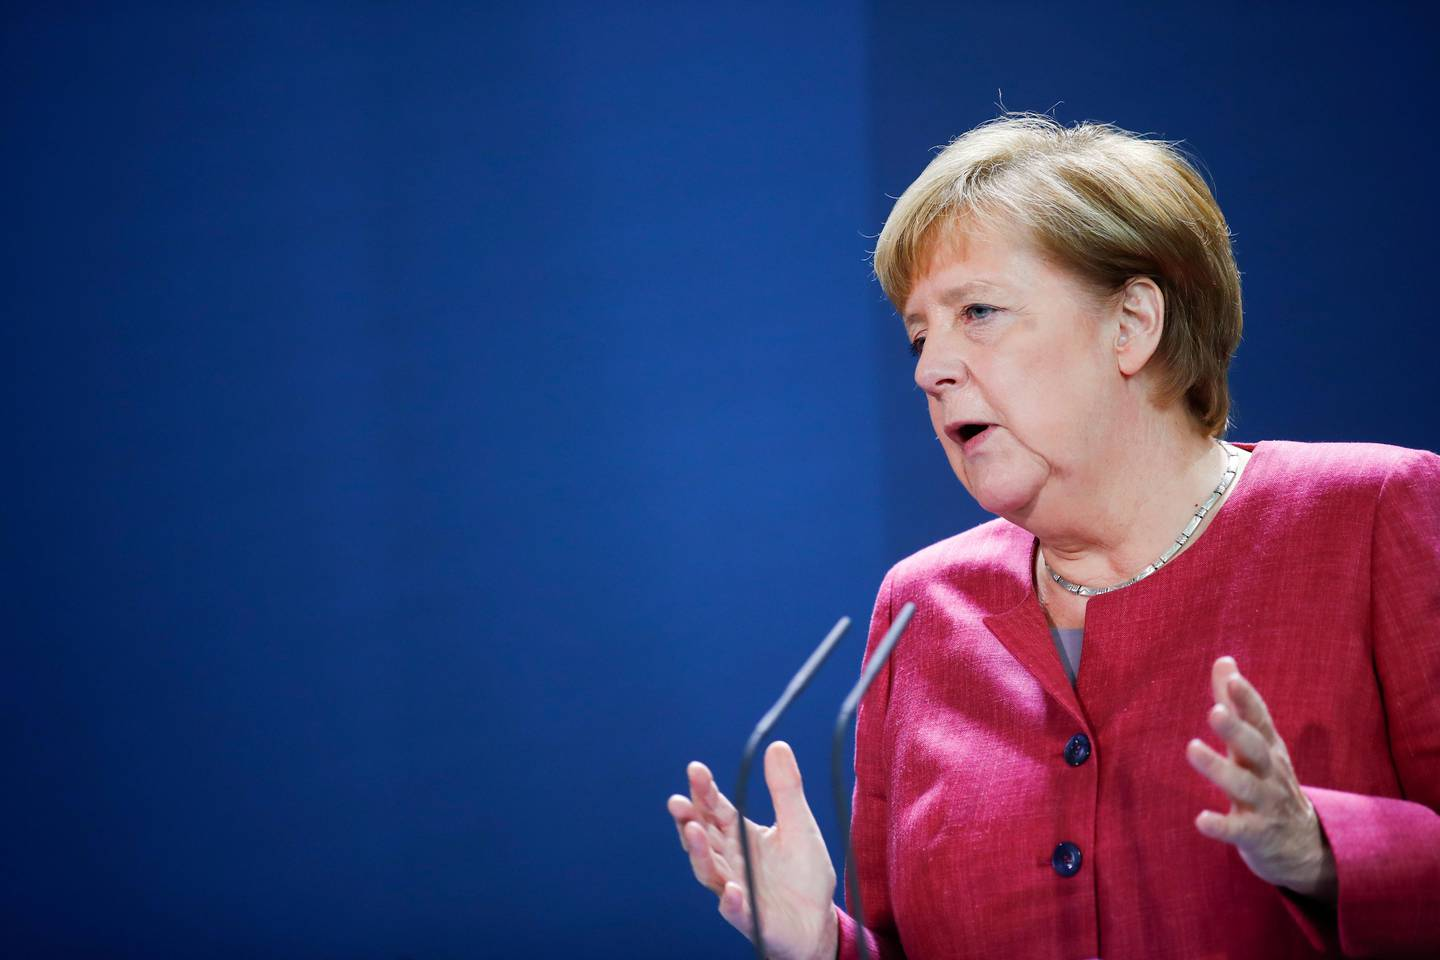 German Chancellor Angela Merkel gives a media statement after a video conference with mayors of German cities on the spread of the coronavirus disease, in Berlin, Germany, Oct. 9, 2020. (Axel Schmidt/Pool via AP)